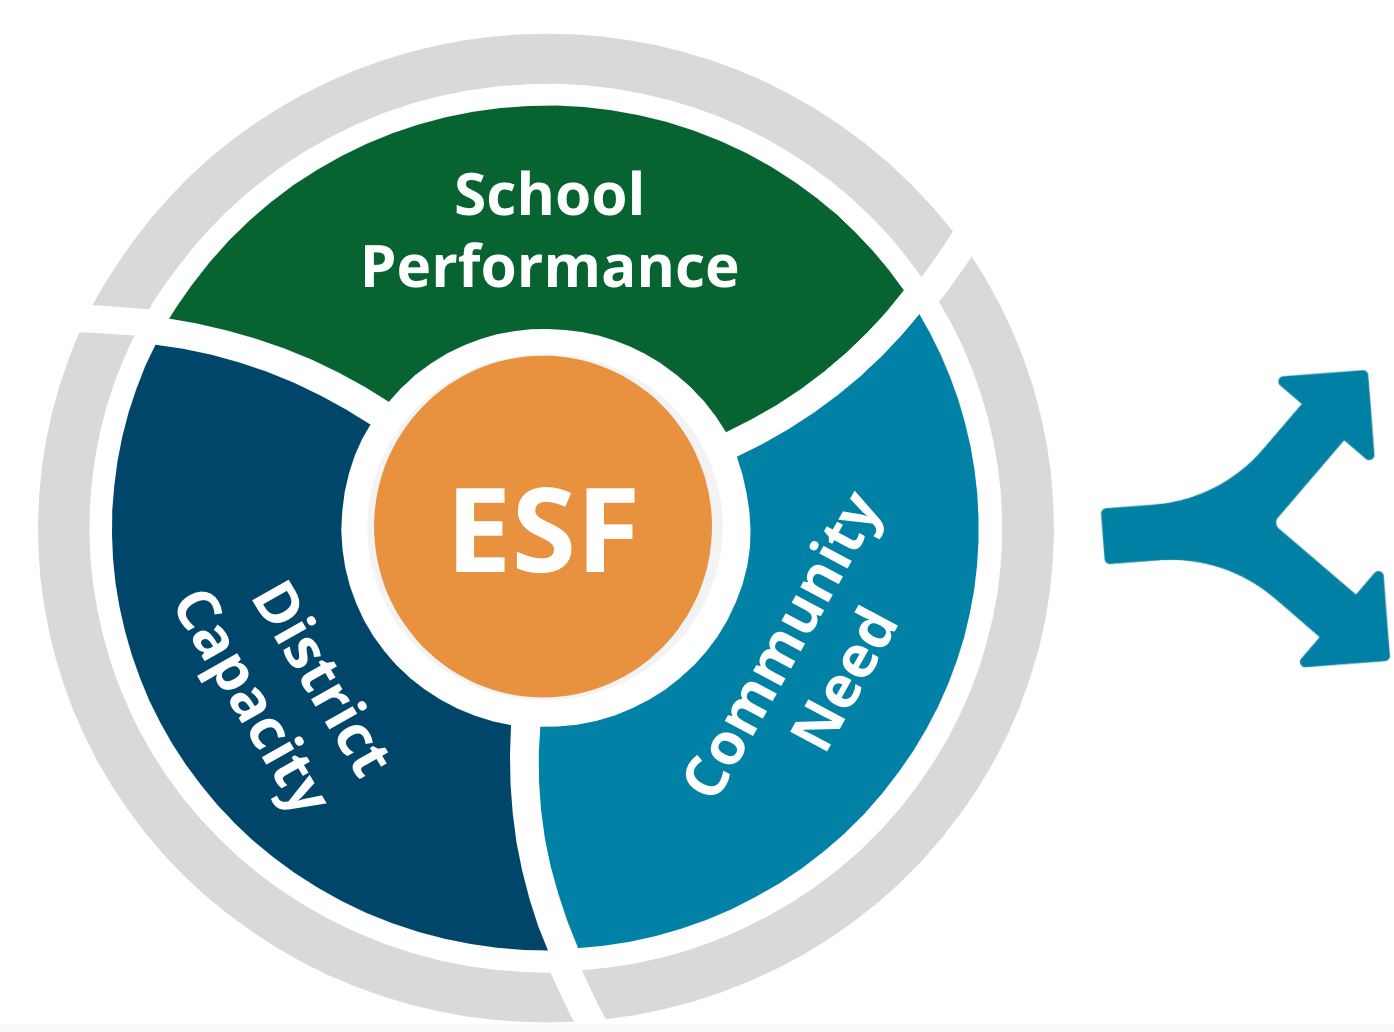 School Performance, Community Need and District Capacity with ESF central to analysis